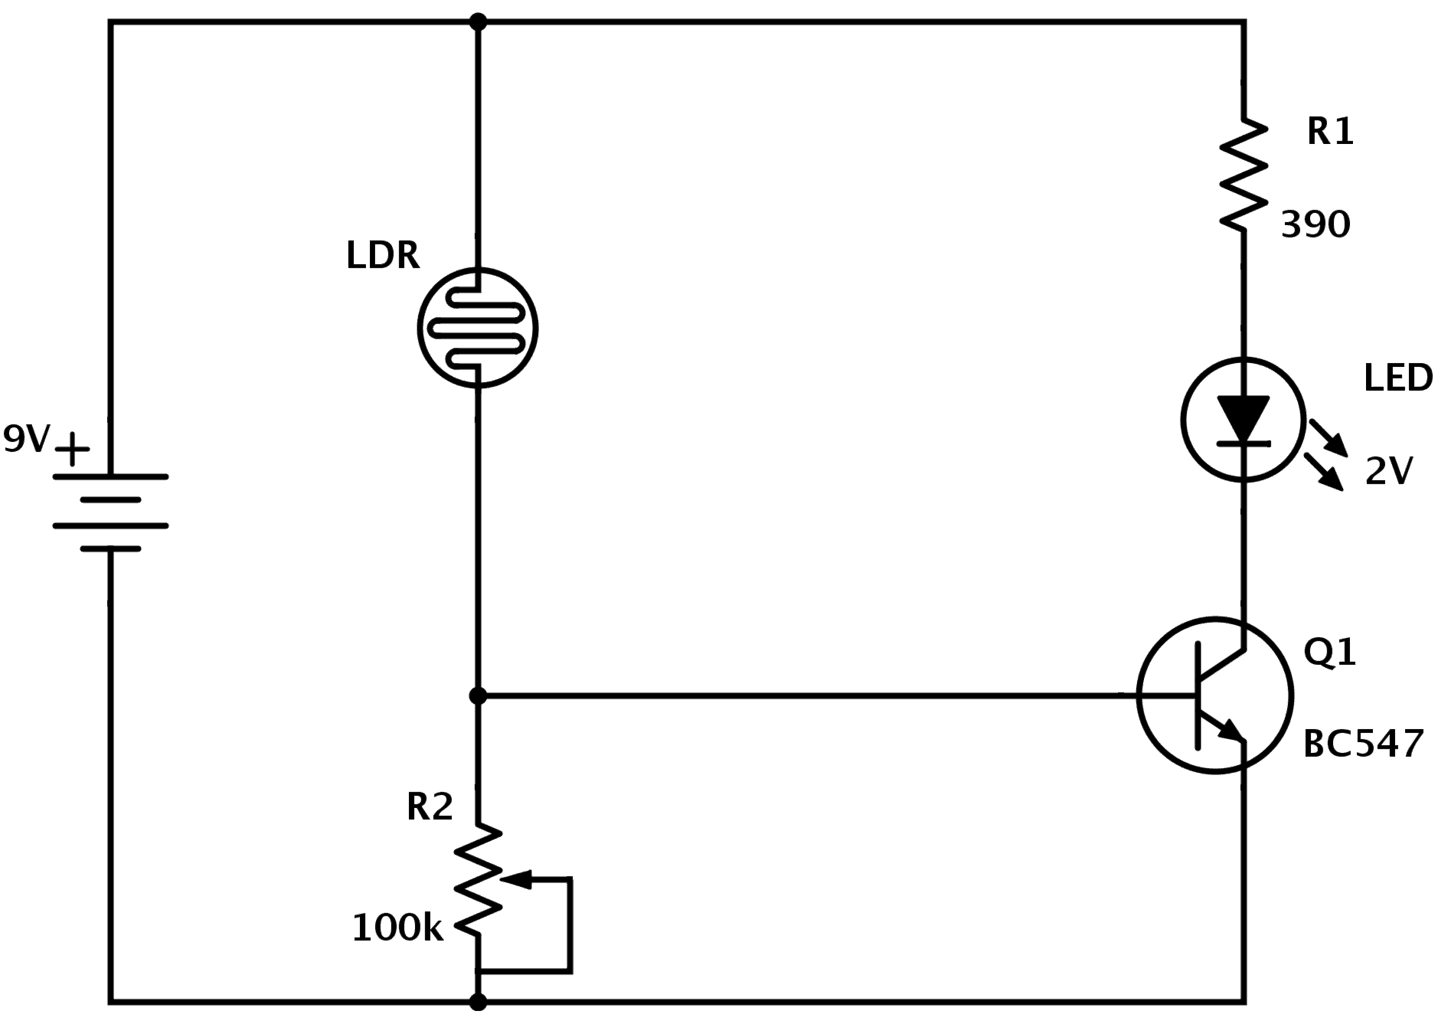 Ldr Circuit Diagram Build Electronic Circuits 555timer Alternating Blinking Led Issue